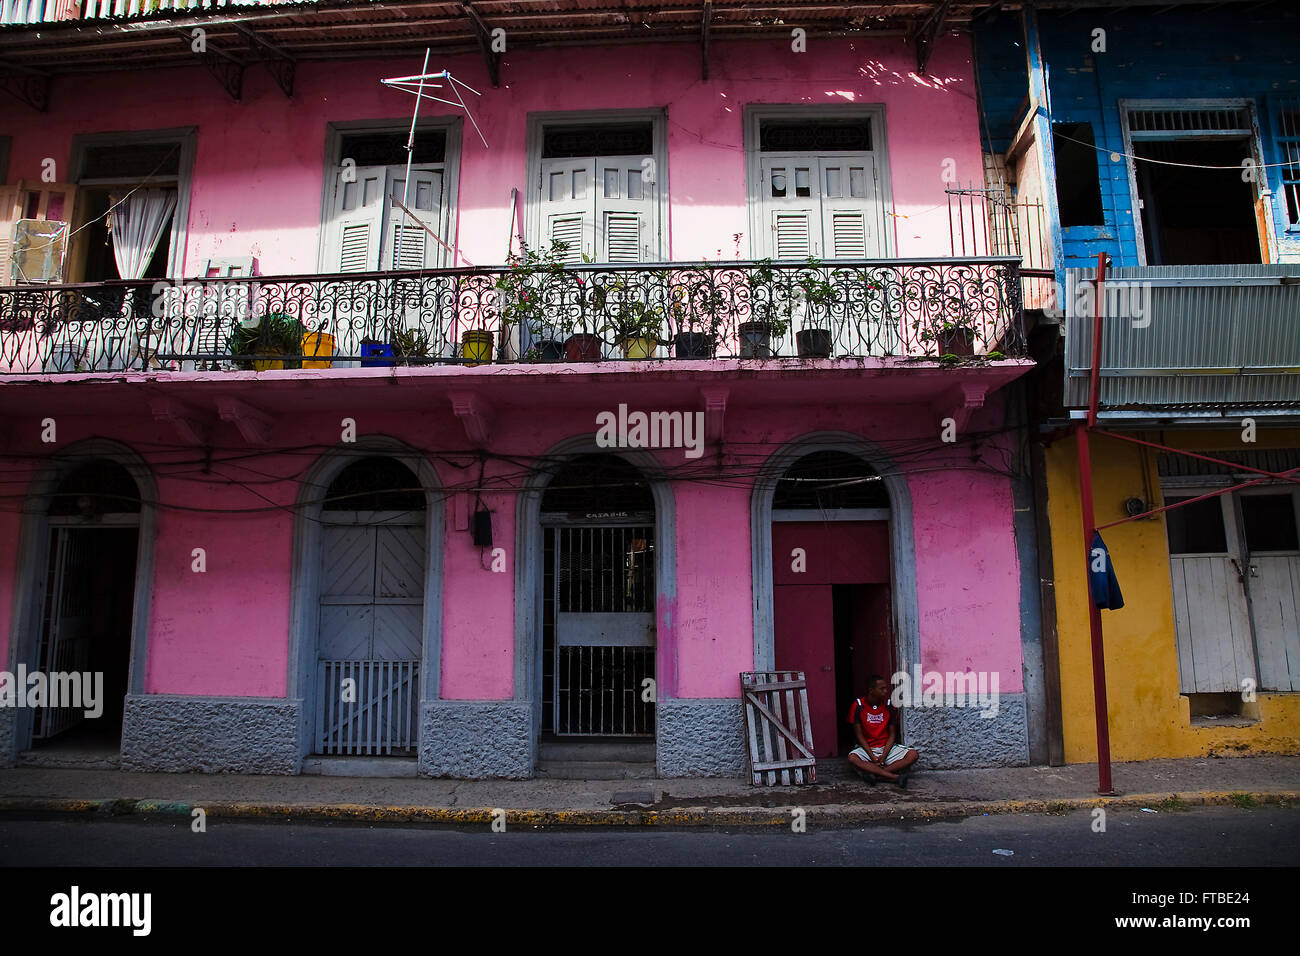 House in Casco Viejo, Panamá city. Panama - Stock Image